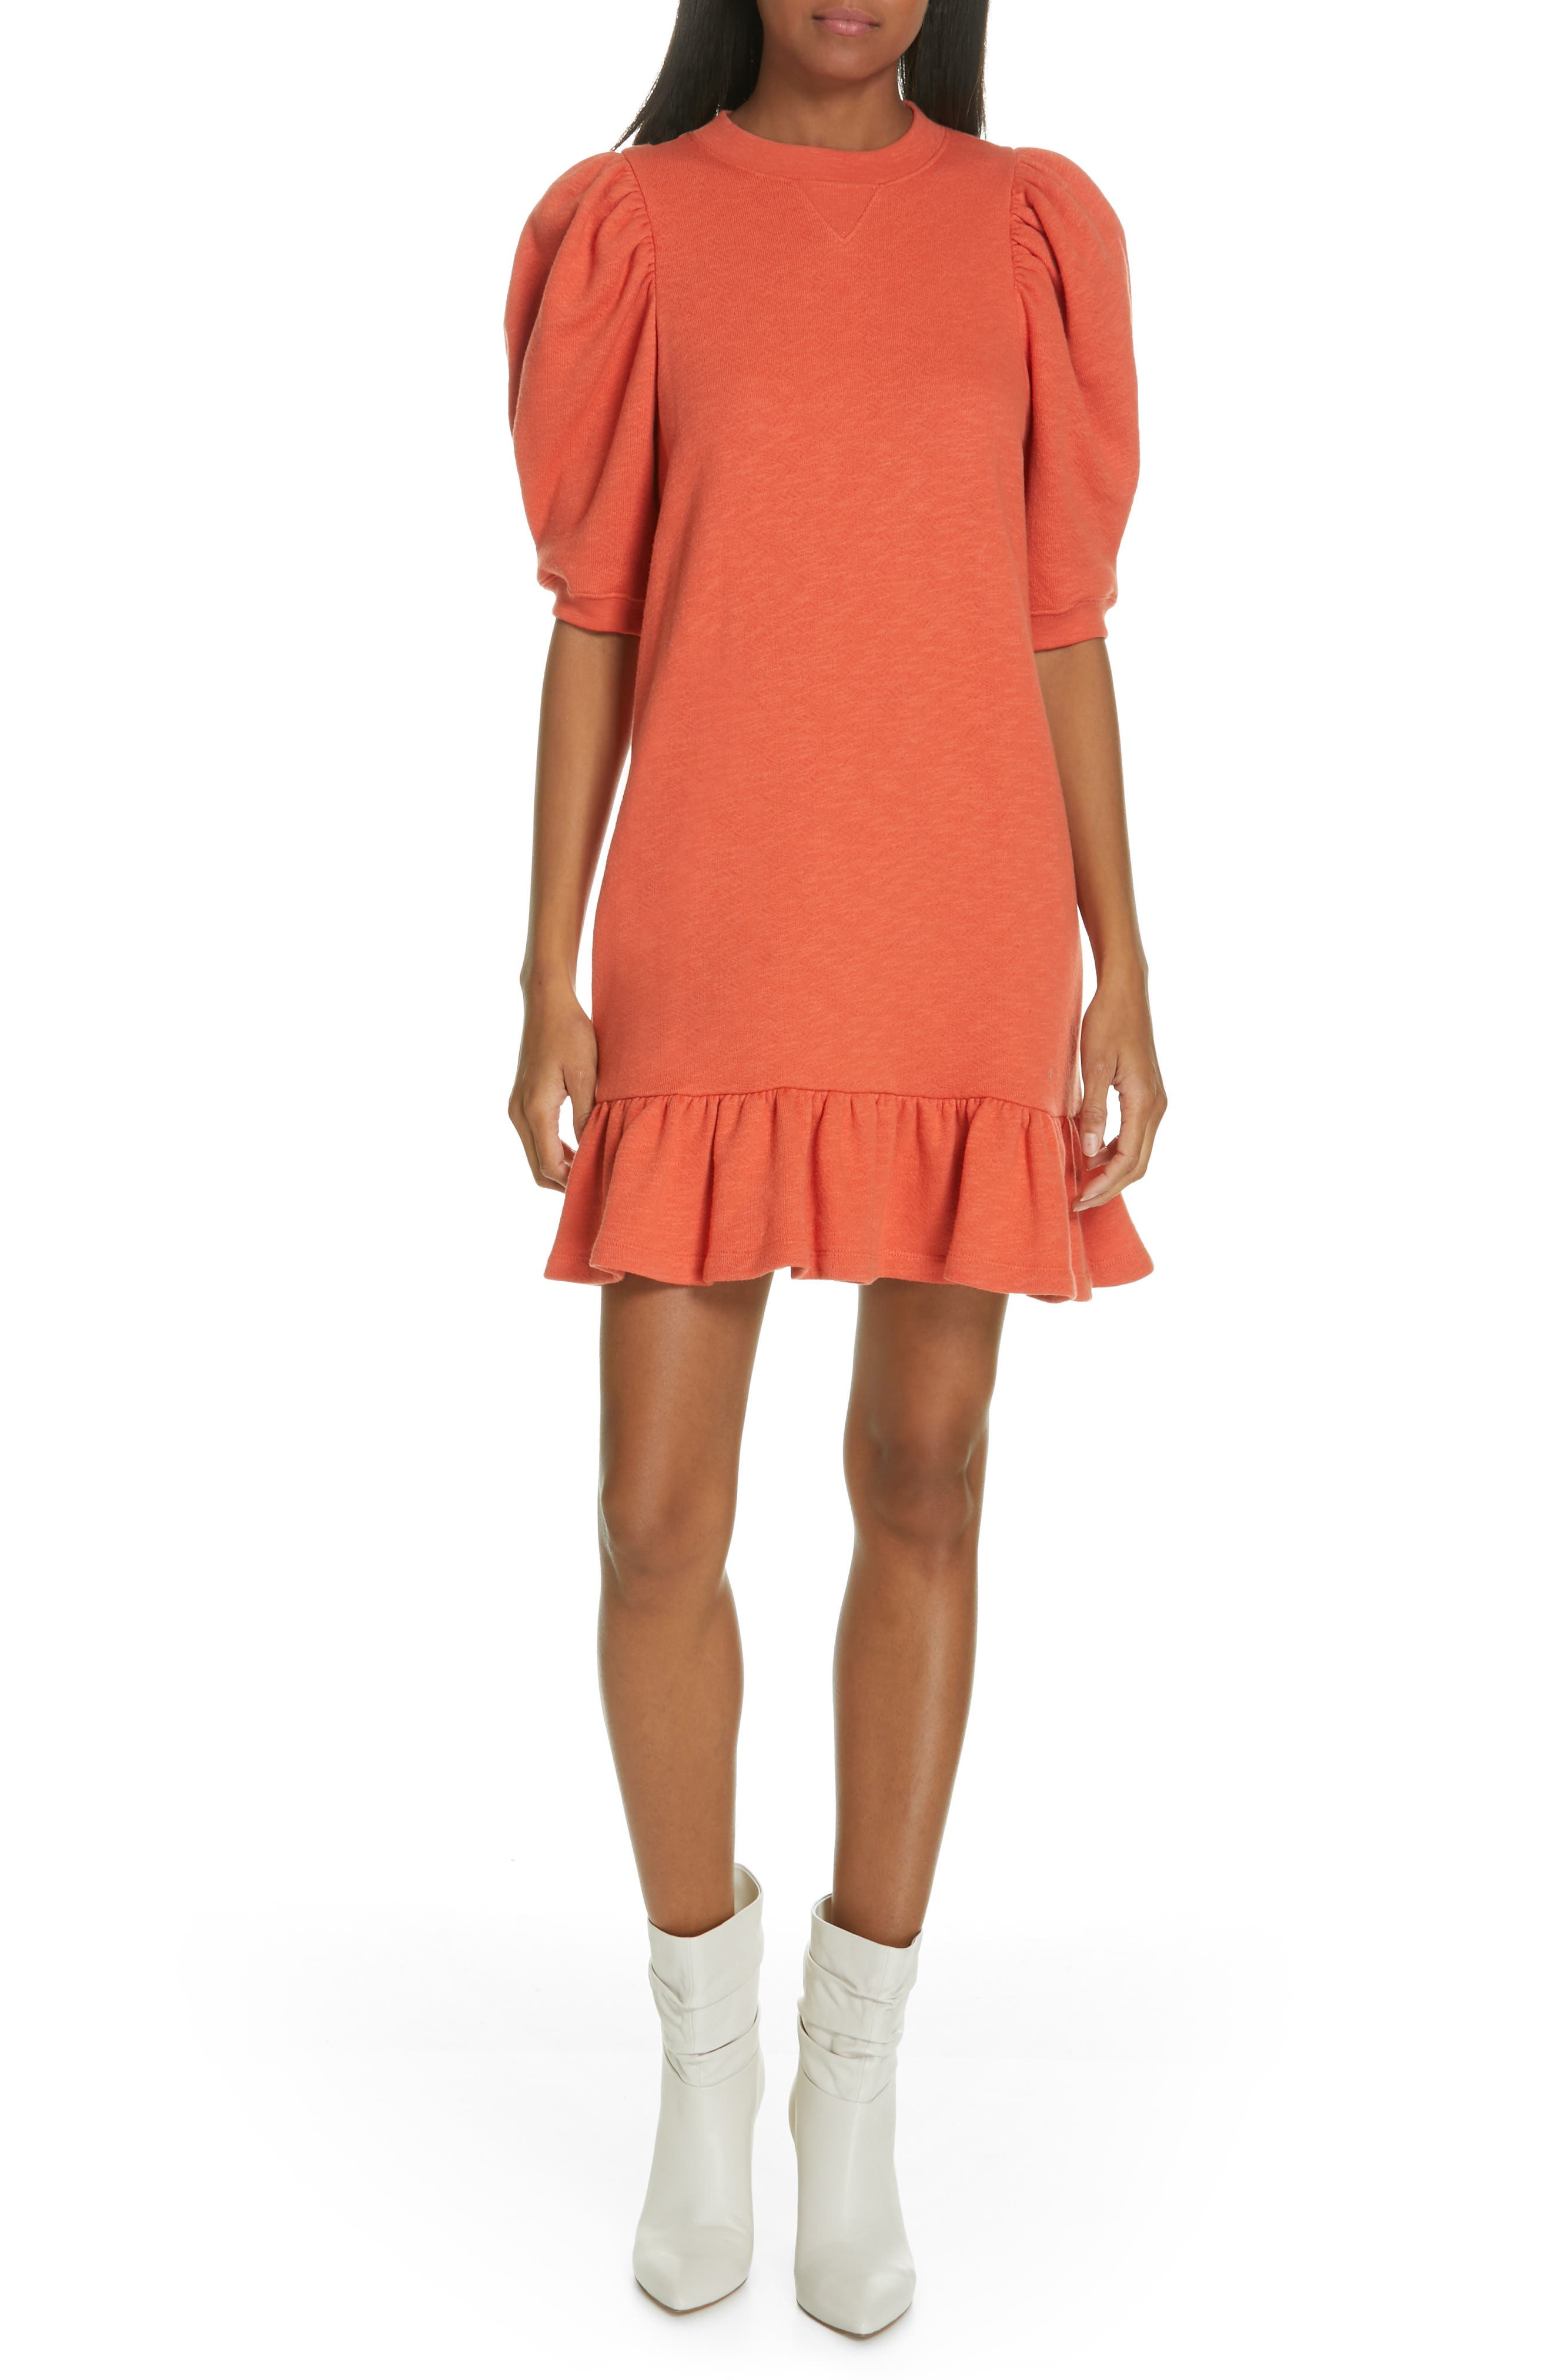 ULLA JOHNSON, Landry Puff Sleeve Sweatshirt Dress, Alternate thumbnail 5, color, CHILI